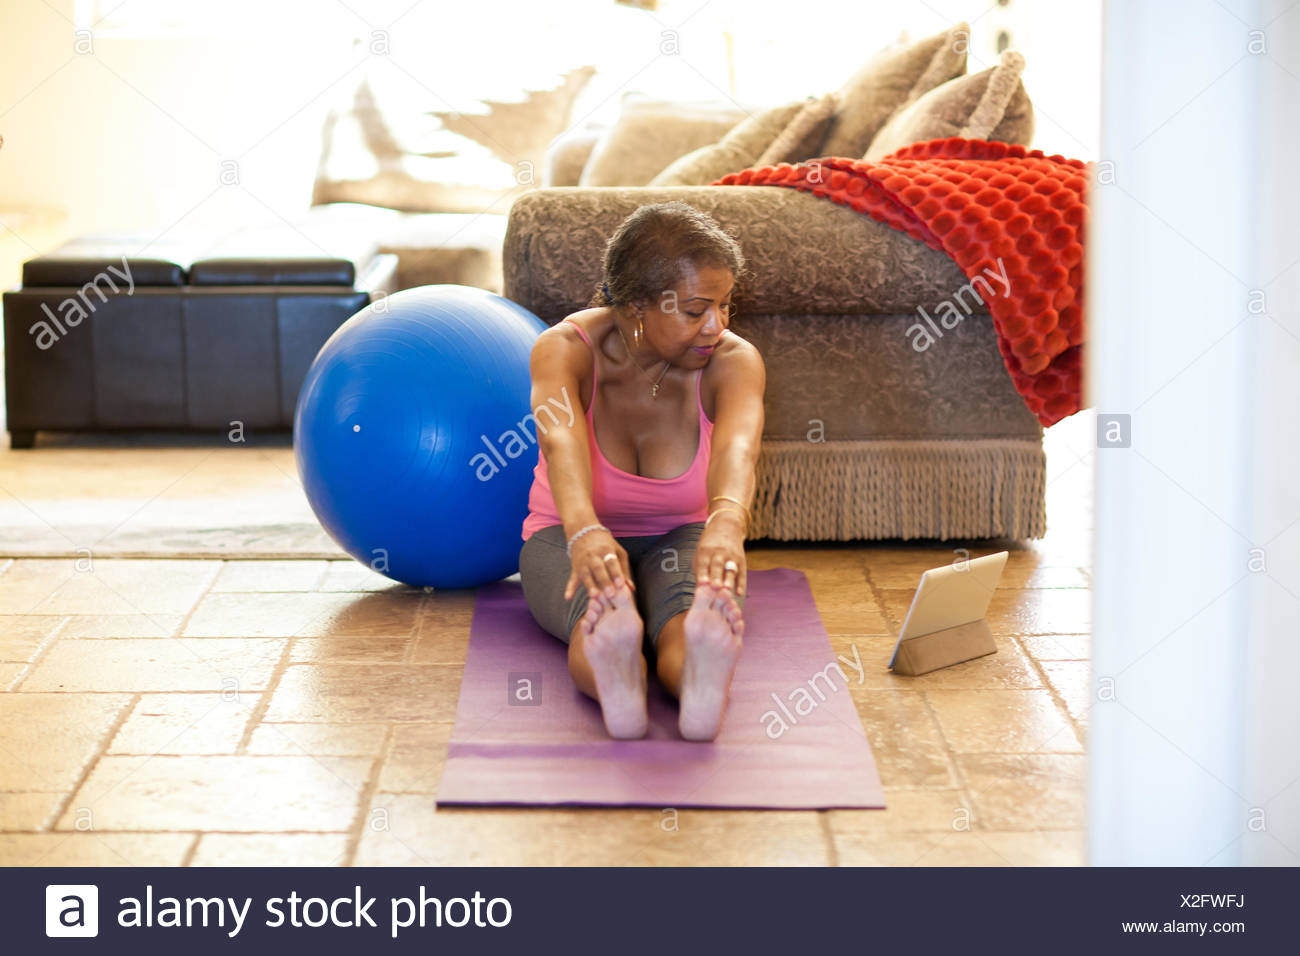 Woman on yoga mat using digital tablet, stretching - Stock Image